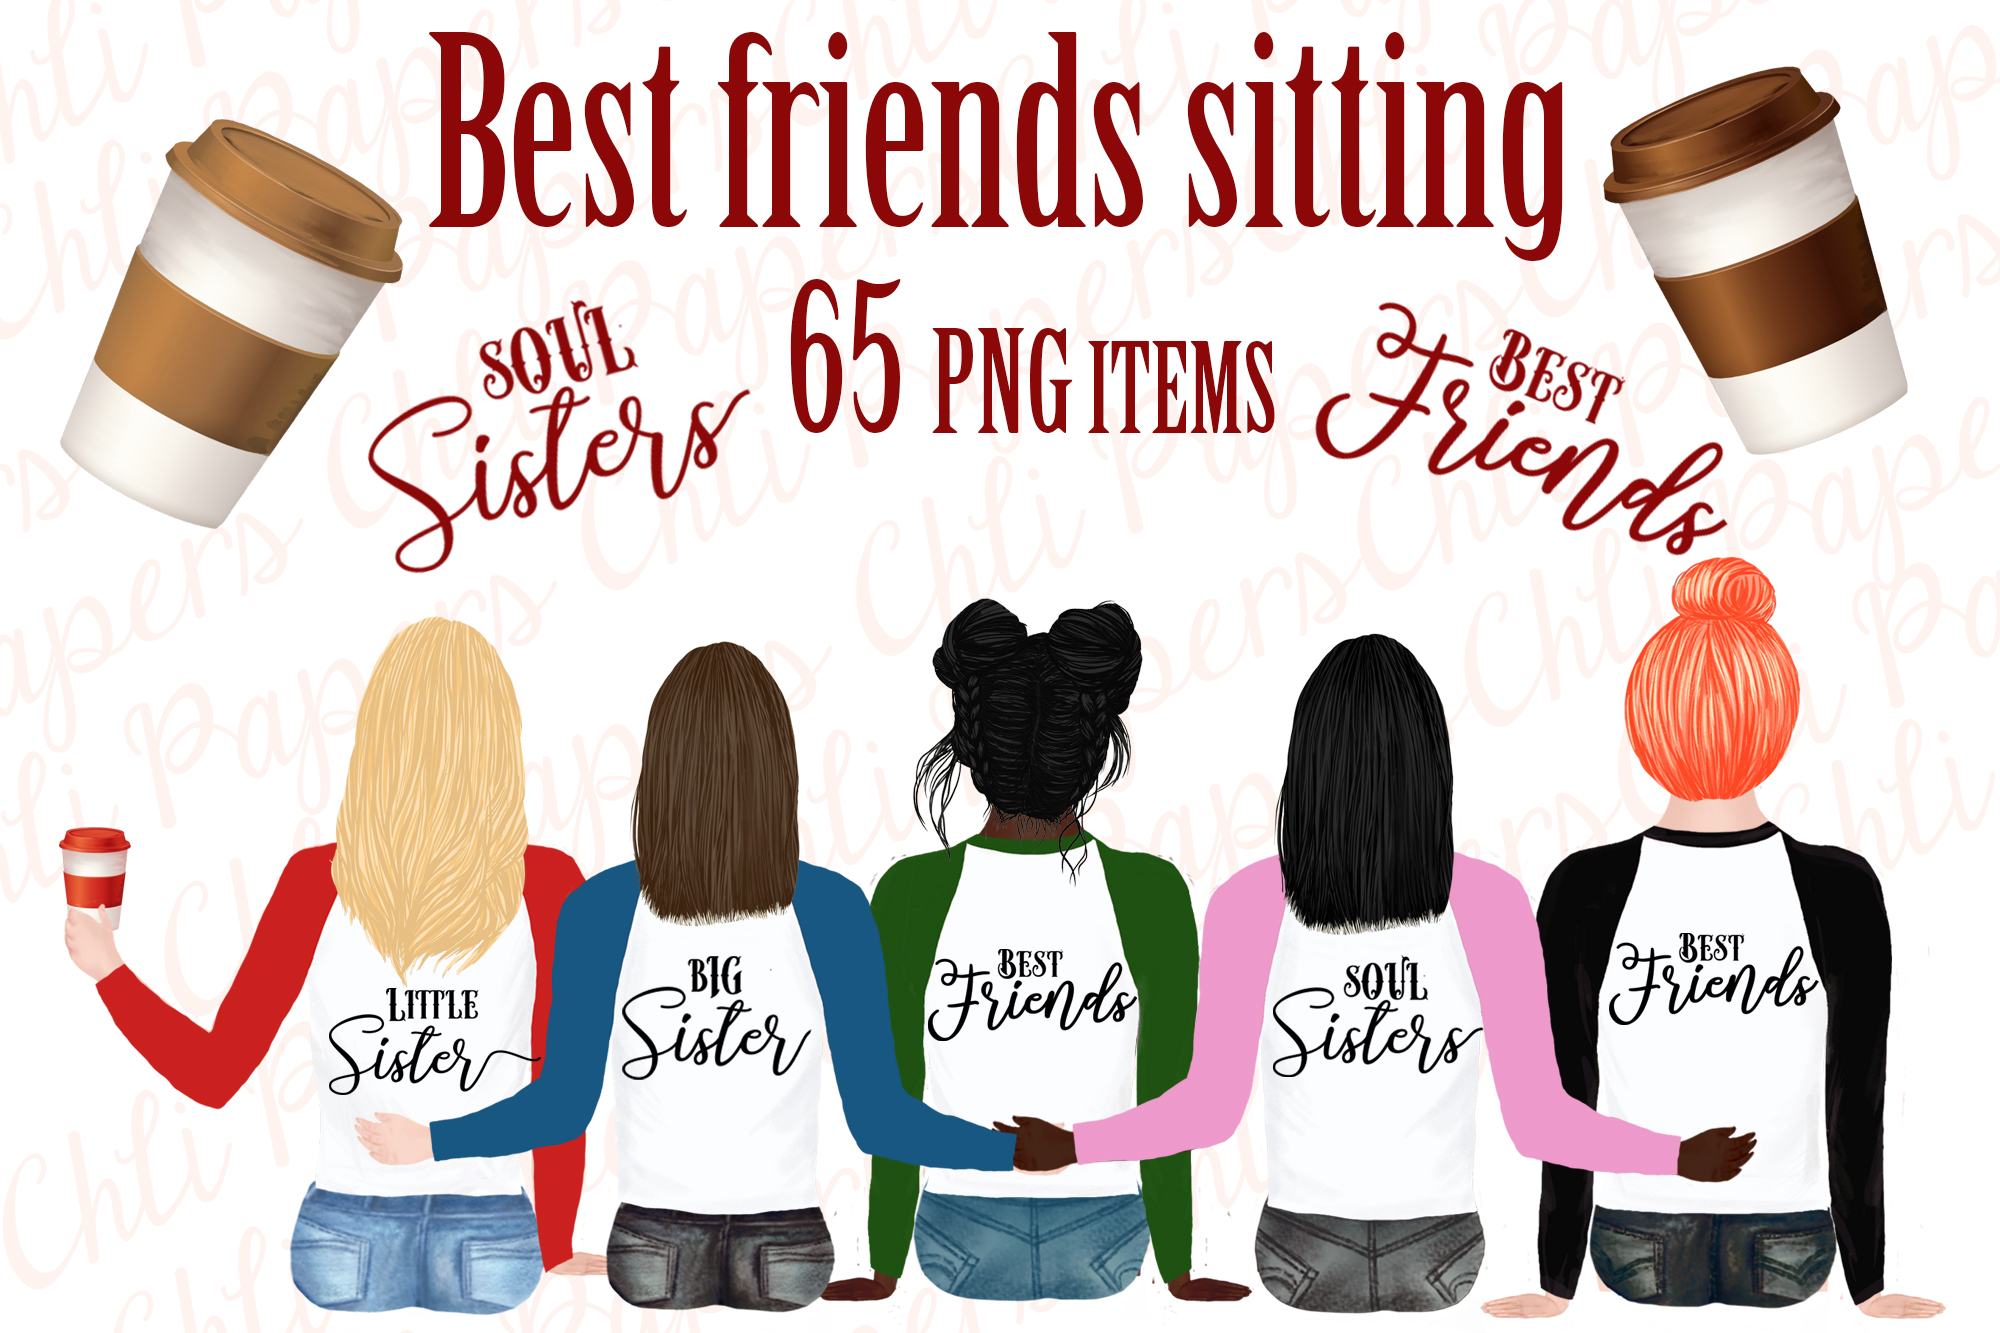 Download Free Best Friend Clipart Portret Creator Graphic By Chilipapers for Cricut Explore, Silhouette and other cutting machines.